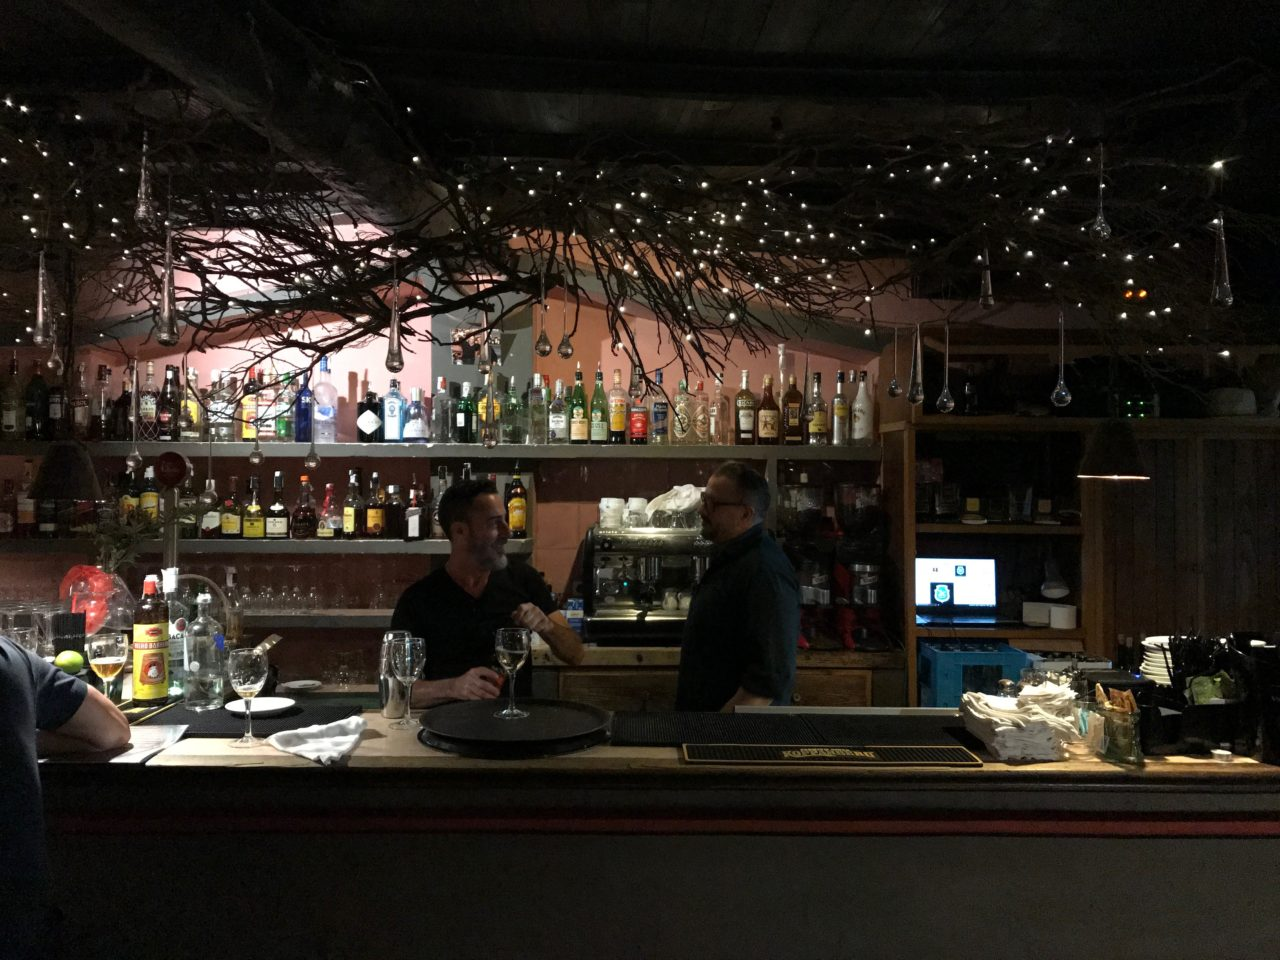 Bartenders Talking In A Bar With Bottles And Glasses